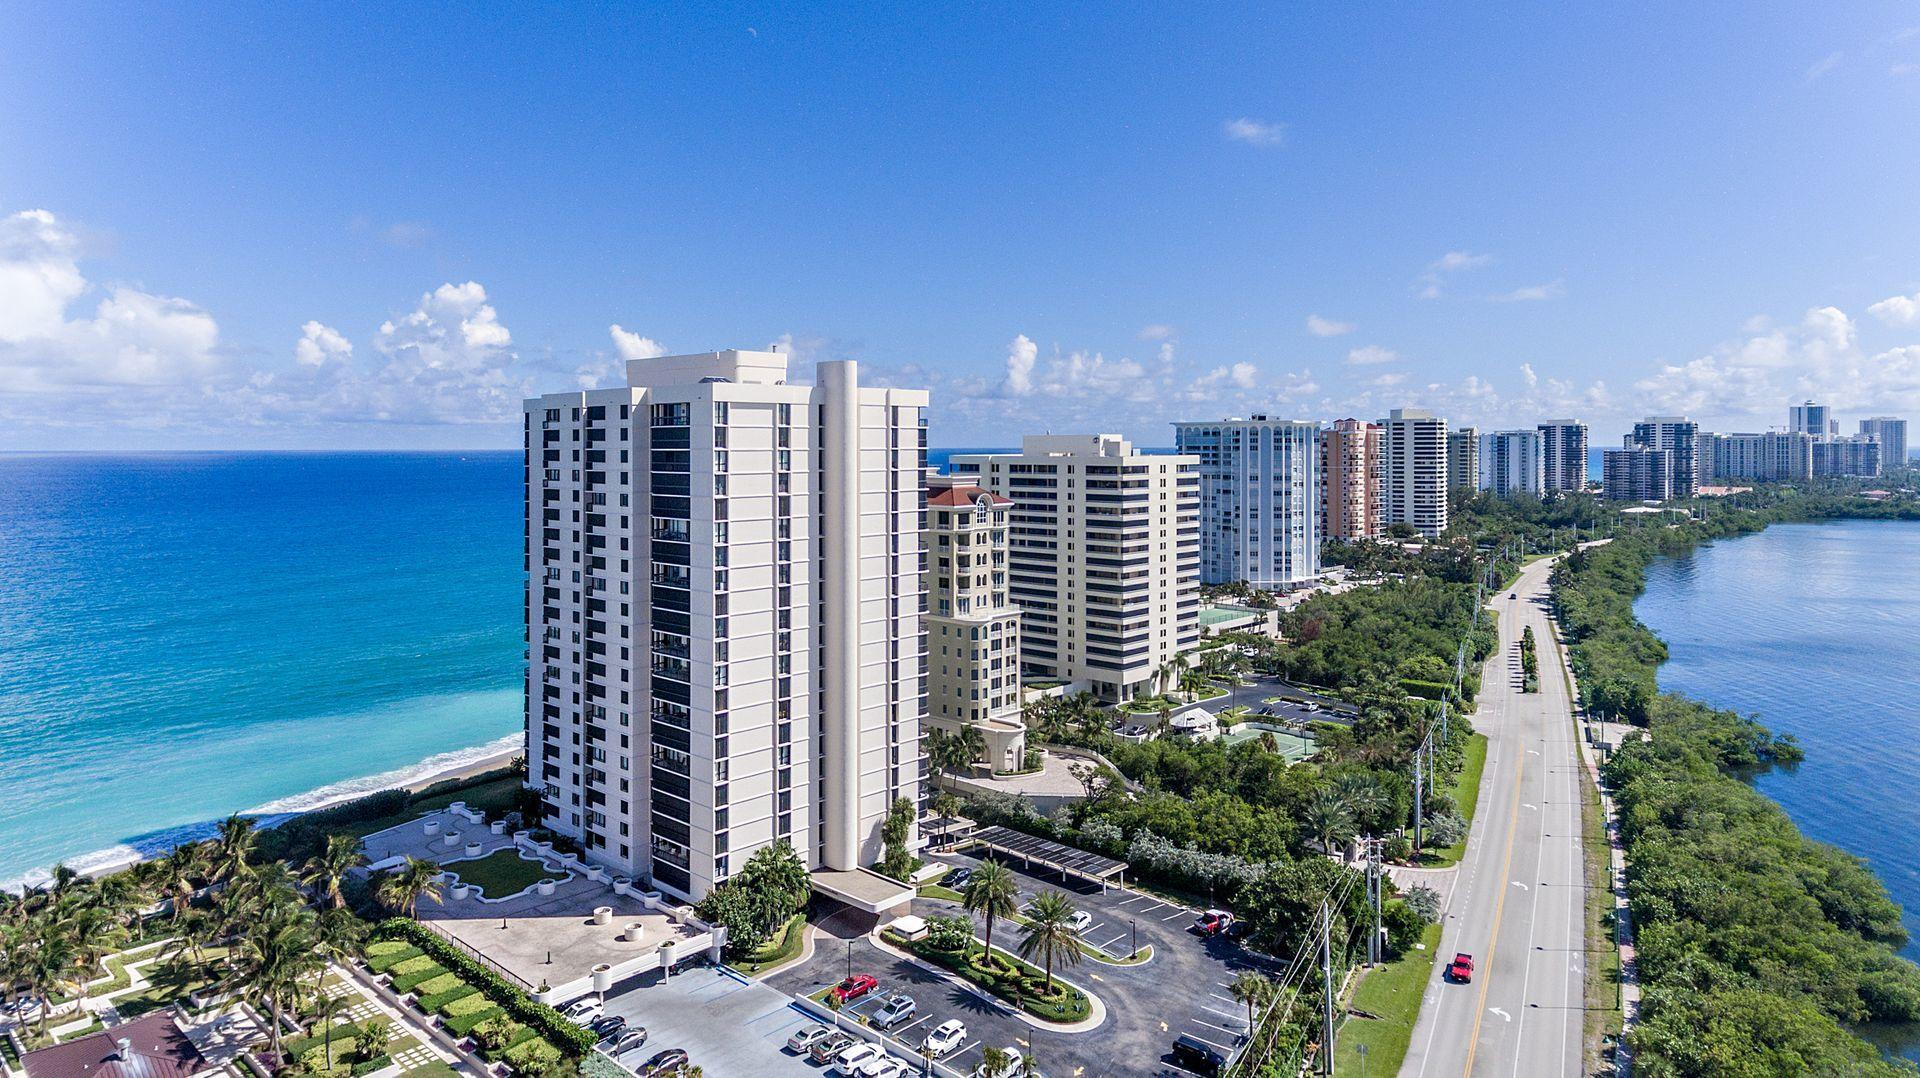 New Home for sale at 5380 Ocean Dr,  in Singer Island